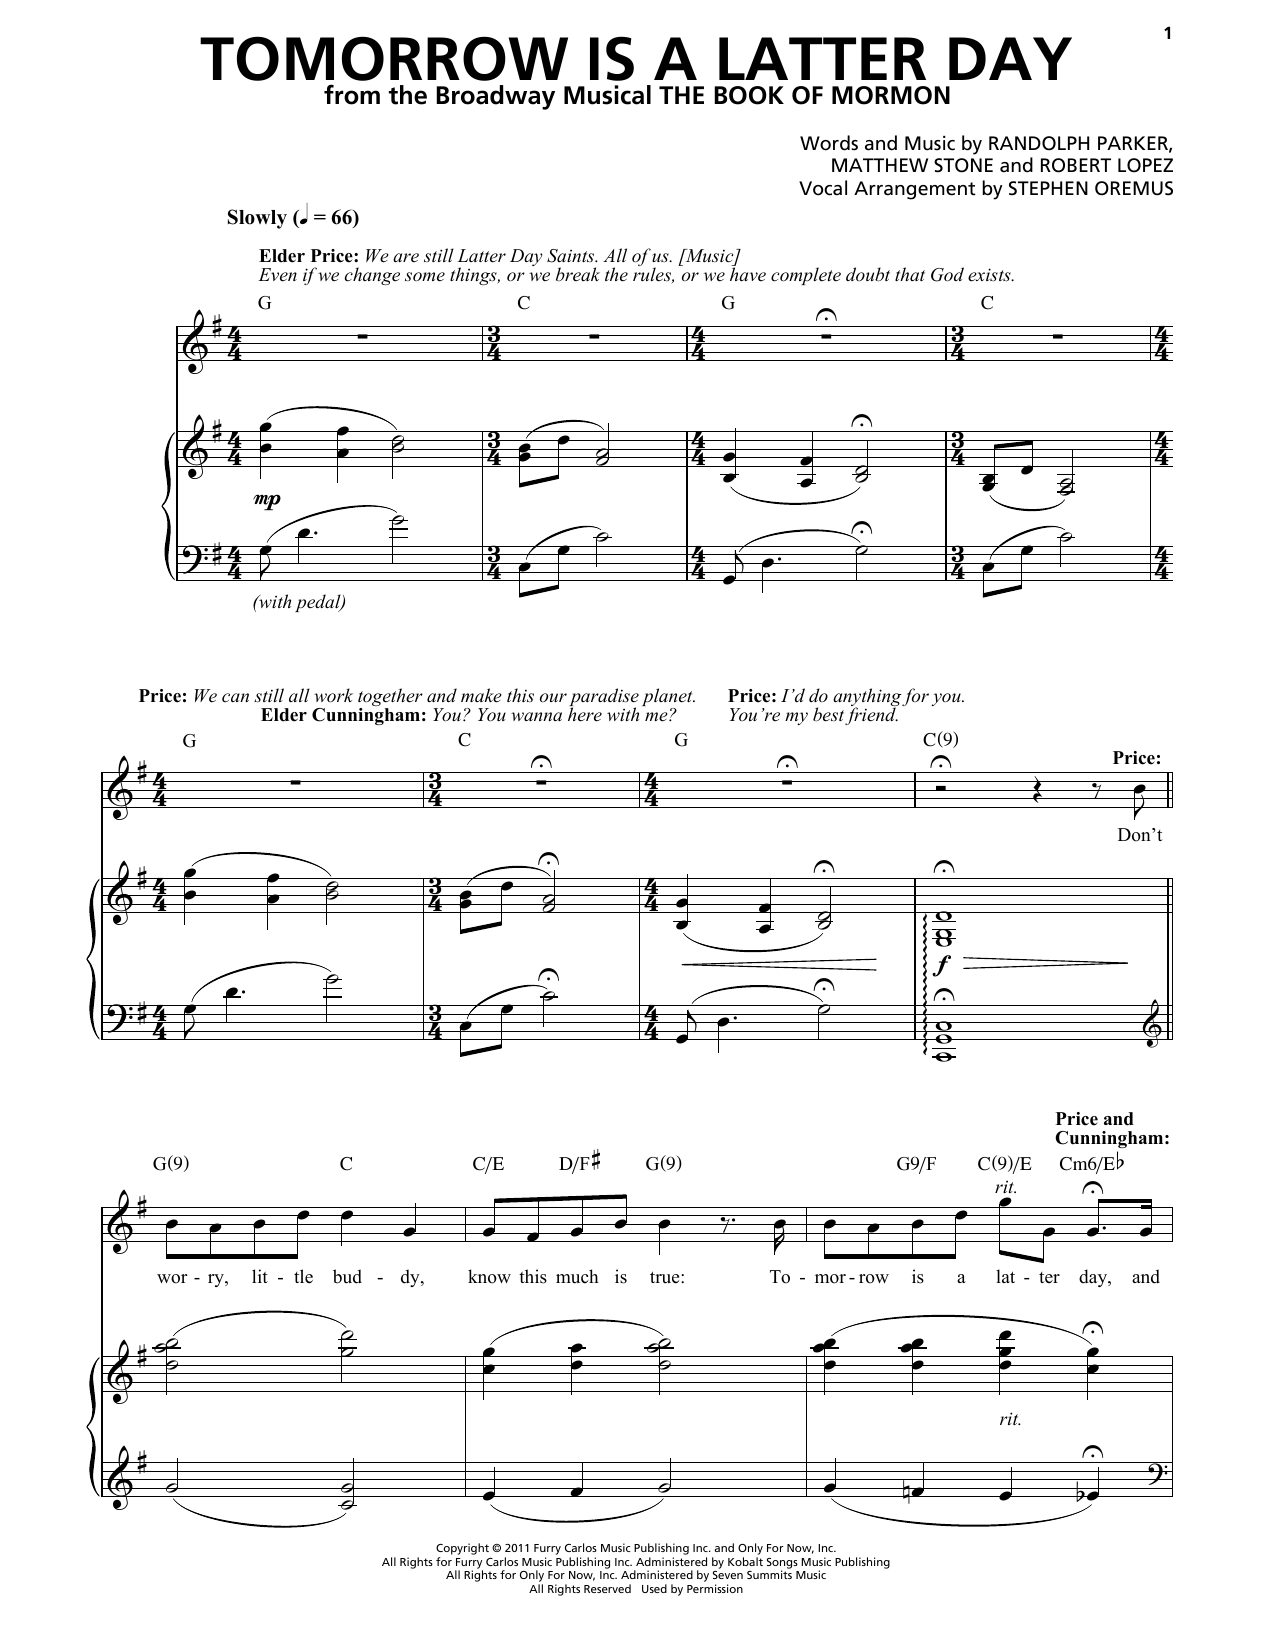 Tomorrow Is A Latter Day (from The Book of Mormon) Sheet Music